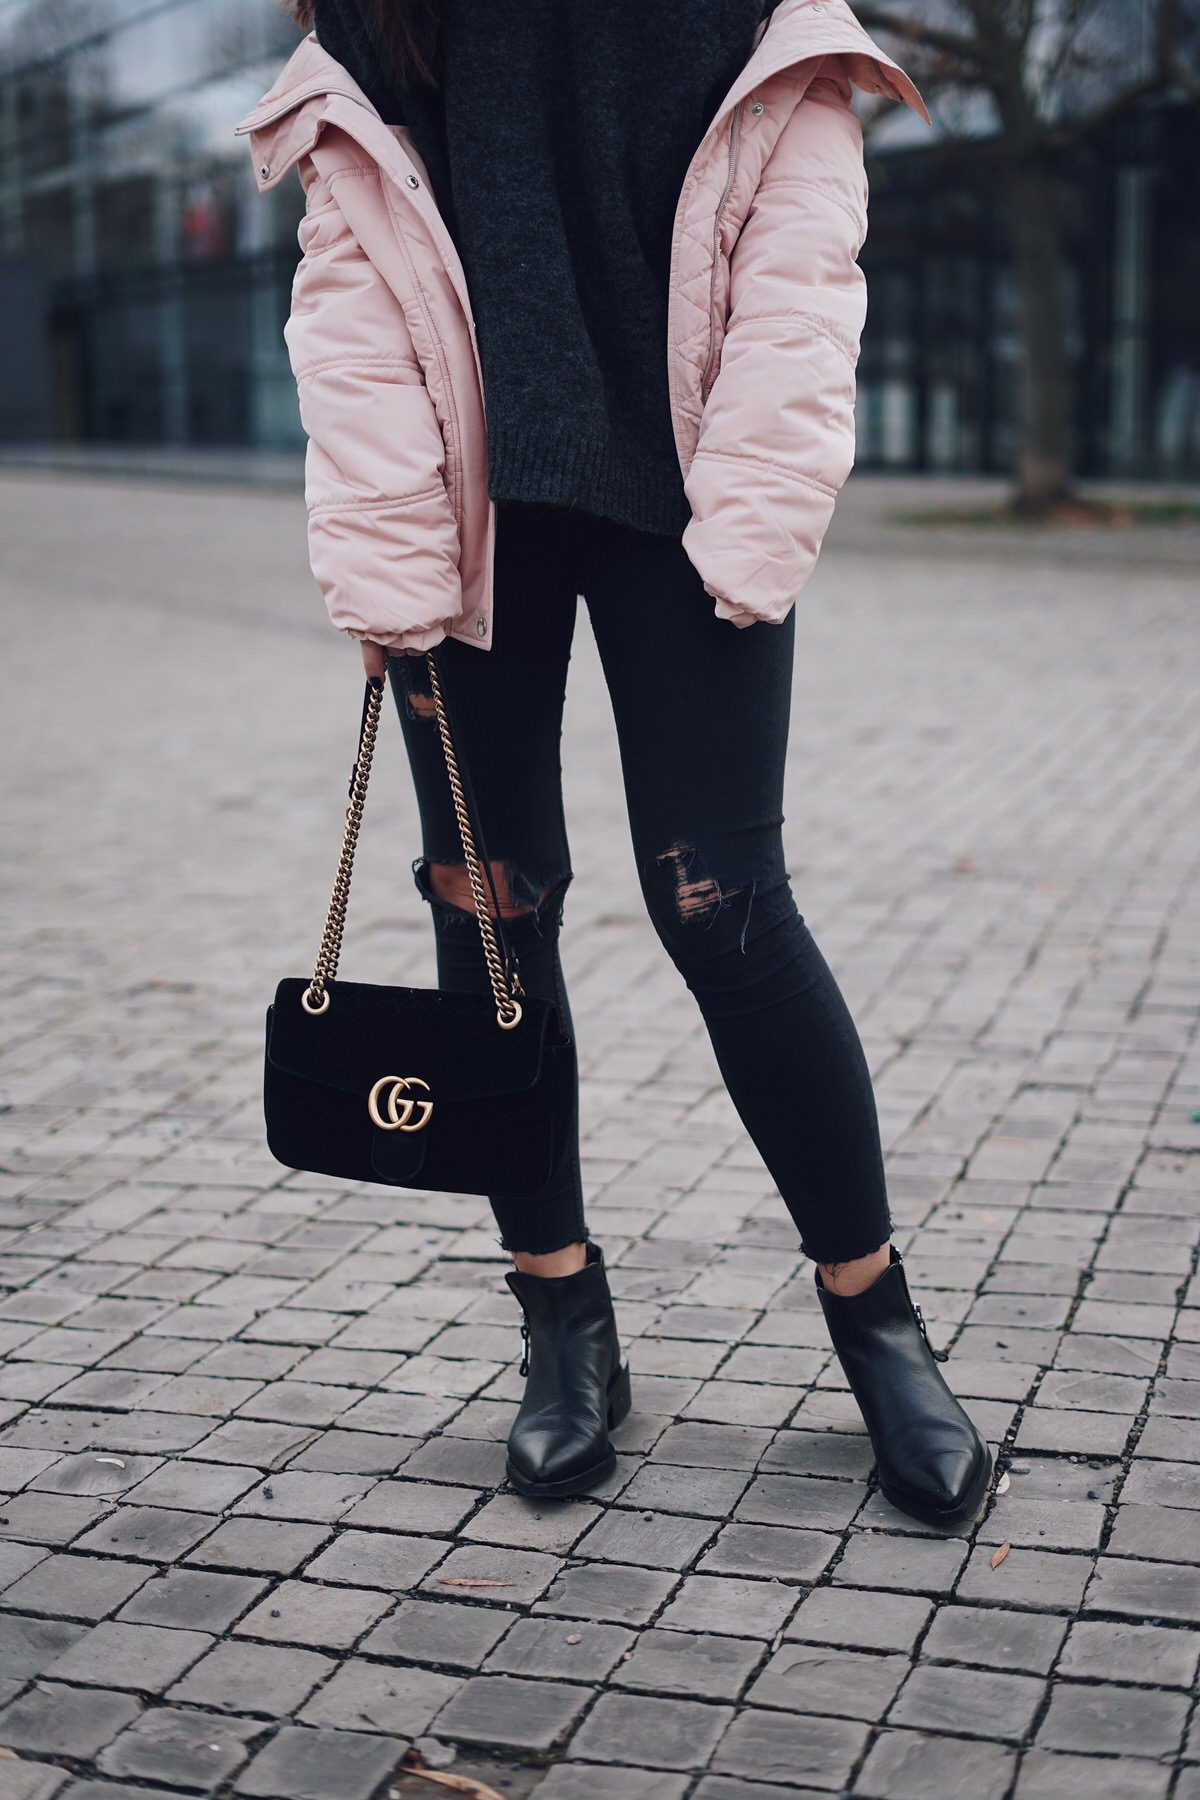 Zign Boots, Gucci Marmont Velvet, Samt, Puffer Jacket, Daunenjacke, Tom Tailor, H&M Mohair Pullover, Streetstyle, Winterlook, Outfit, Ray Ban Round Metal